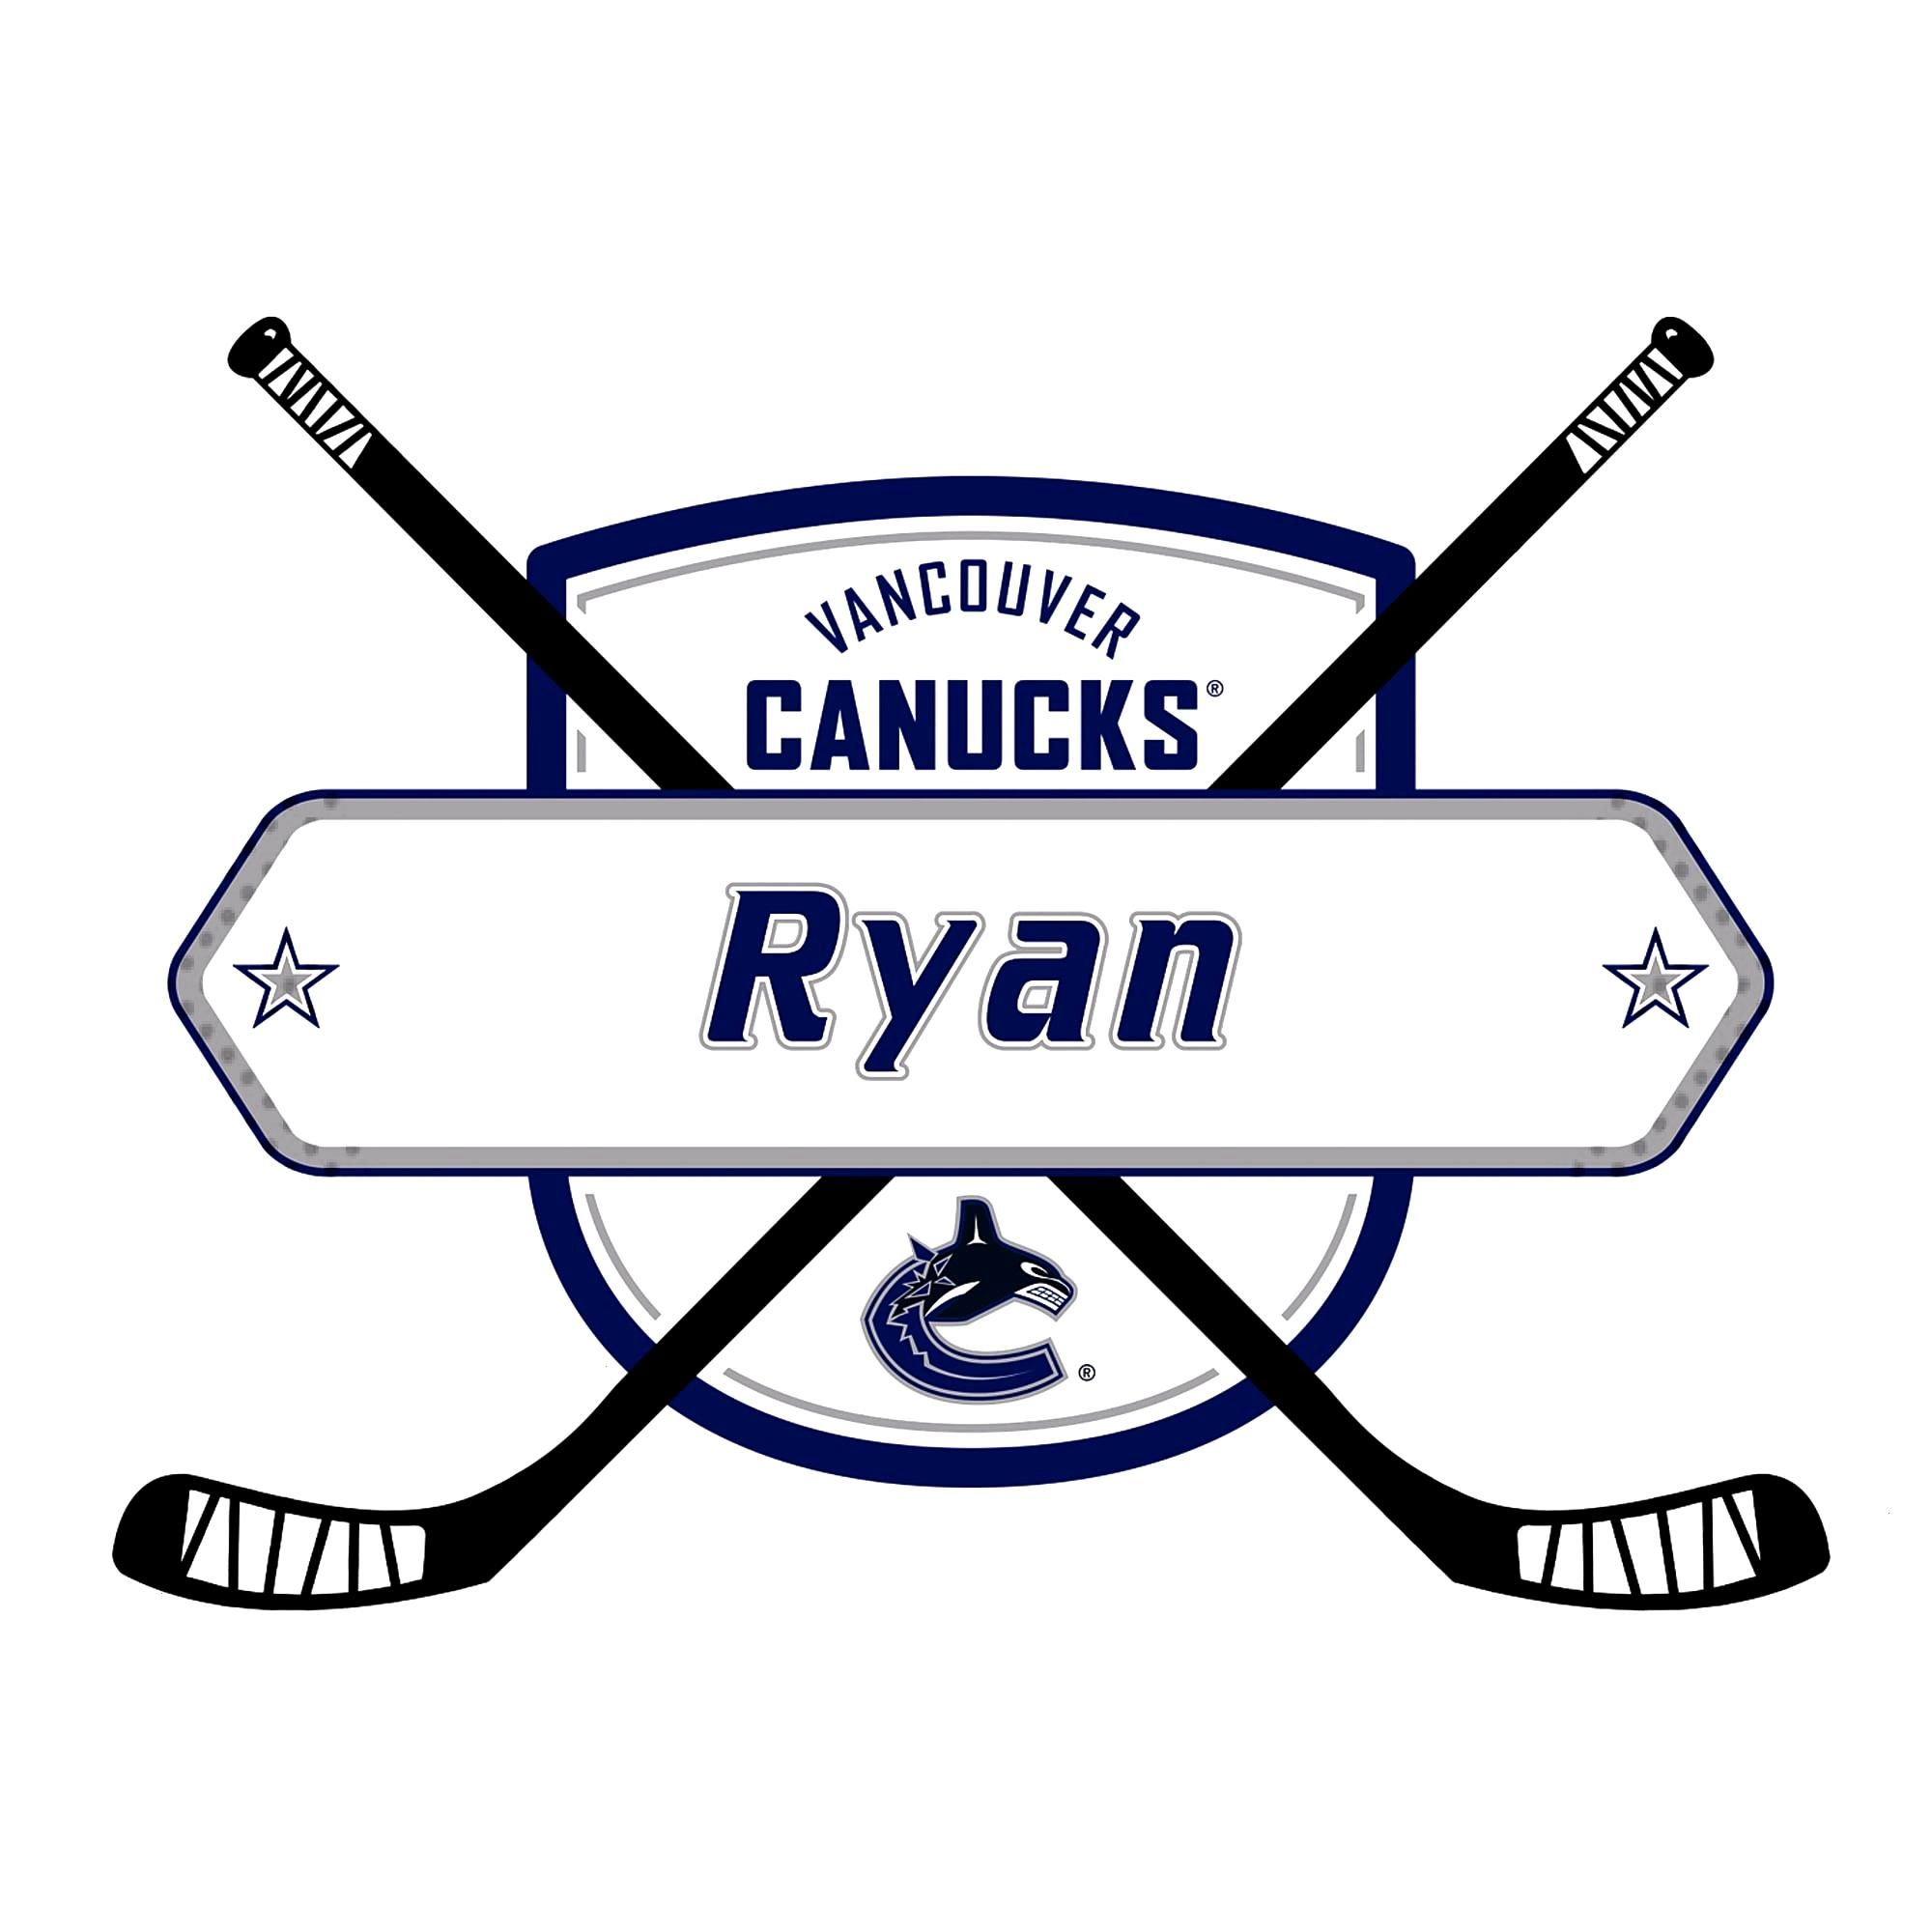 Vancouver Canucks: Personalized Name - Giant NHL Transfer DecalYou can find Los angeles kings and m